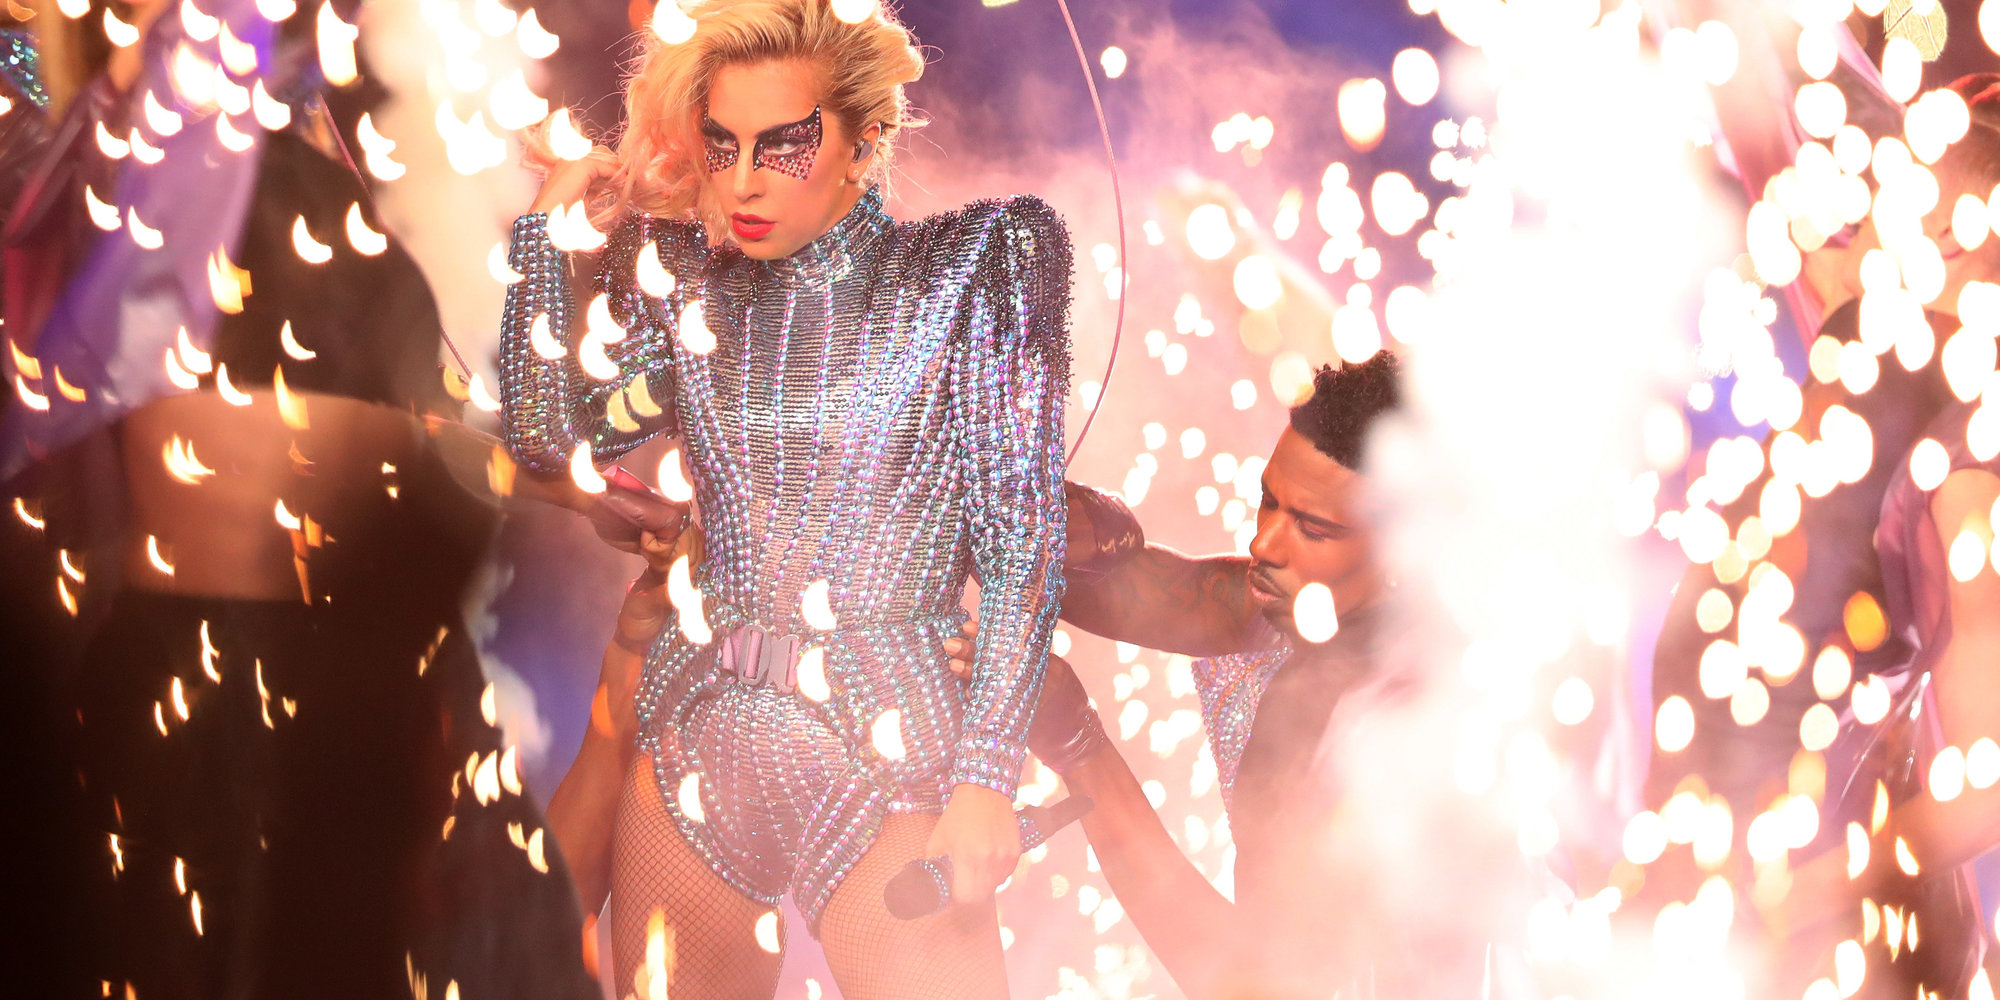 HOUSTON, TX - FEBRUARY 05:  Lady Gaga performs during the Pepsi Zero Sugar Super Bowl 51 Halftime Show at NRG Stadium on February 5, 2017 in Houston, Texas.  (Photo by Tom Pennington/Getty Images) mila kunis and ashton kutcher Meet Mila Kunis and Ashton Kutcher 's New California Beach House lady gaga superbowl 2017 mila kunis and ashton kutcher Meet Mila Kunis and Ashton Kutcher 's New California Beach House lady gaga superbowl 2017